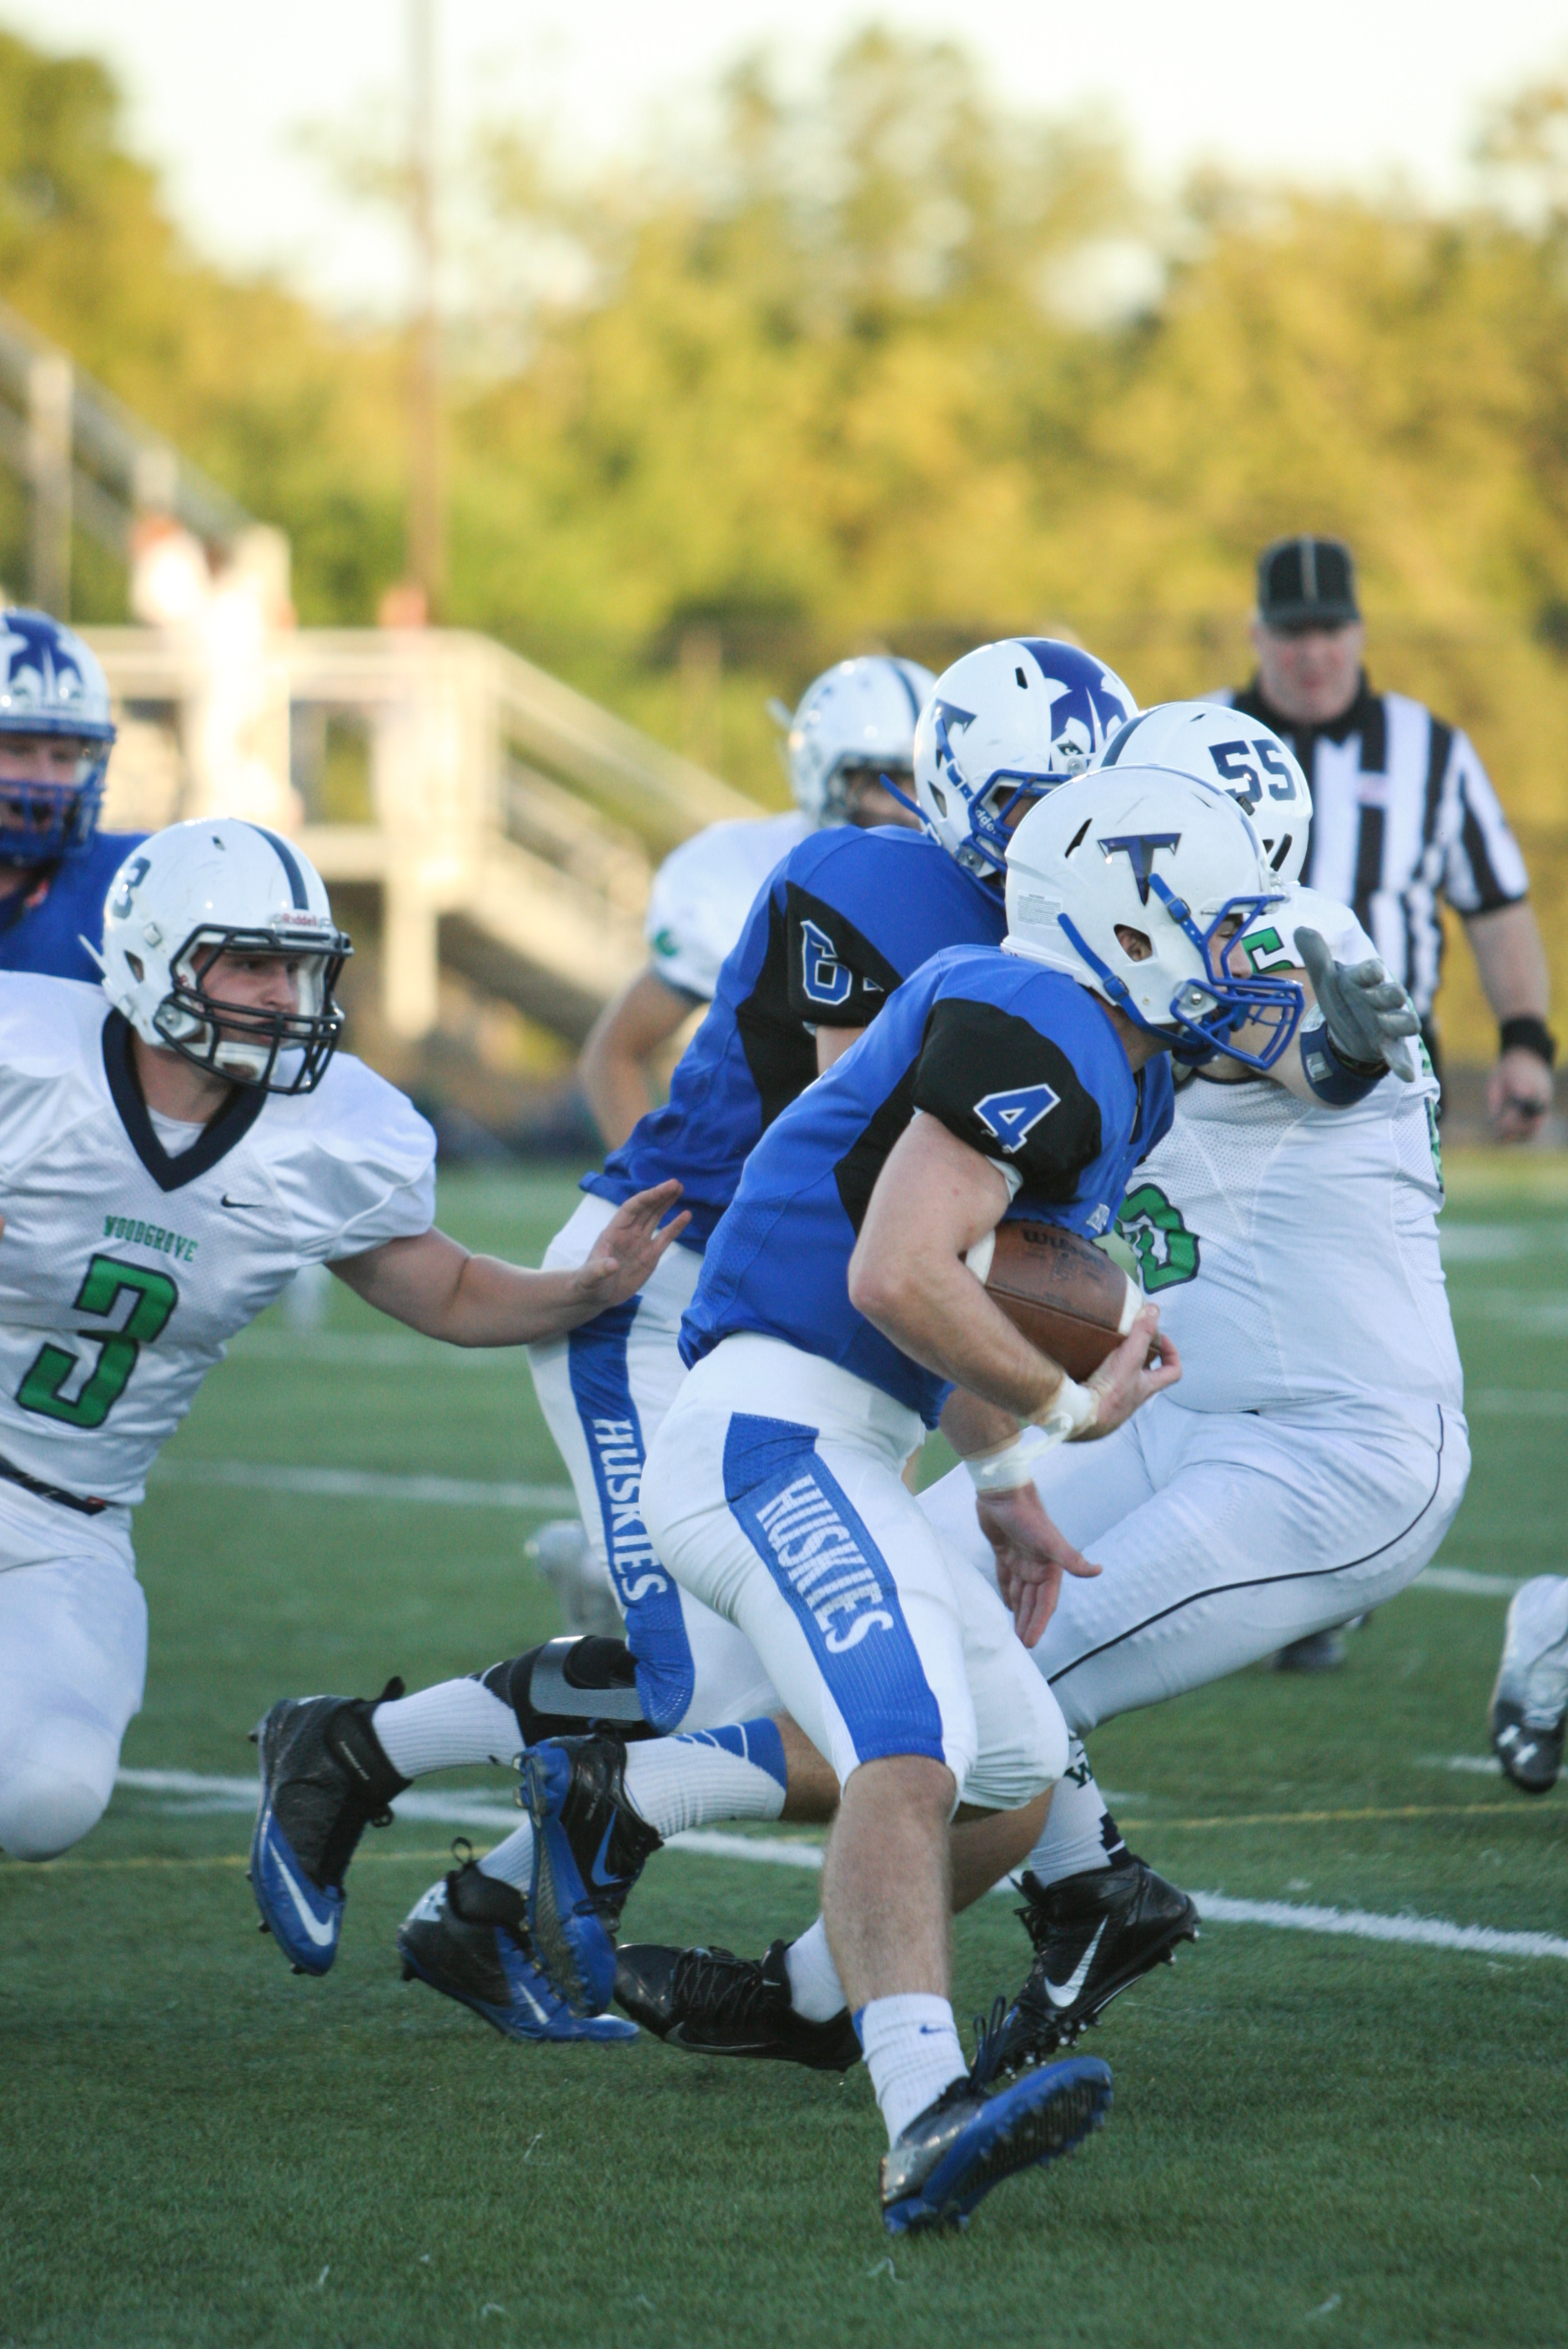 The Tuscarora football team remains undefeated this season, with a winning streak of 6 games. Photo by Delaney Casten.